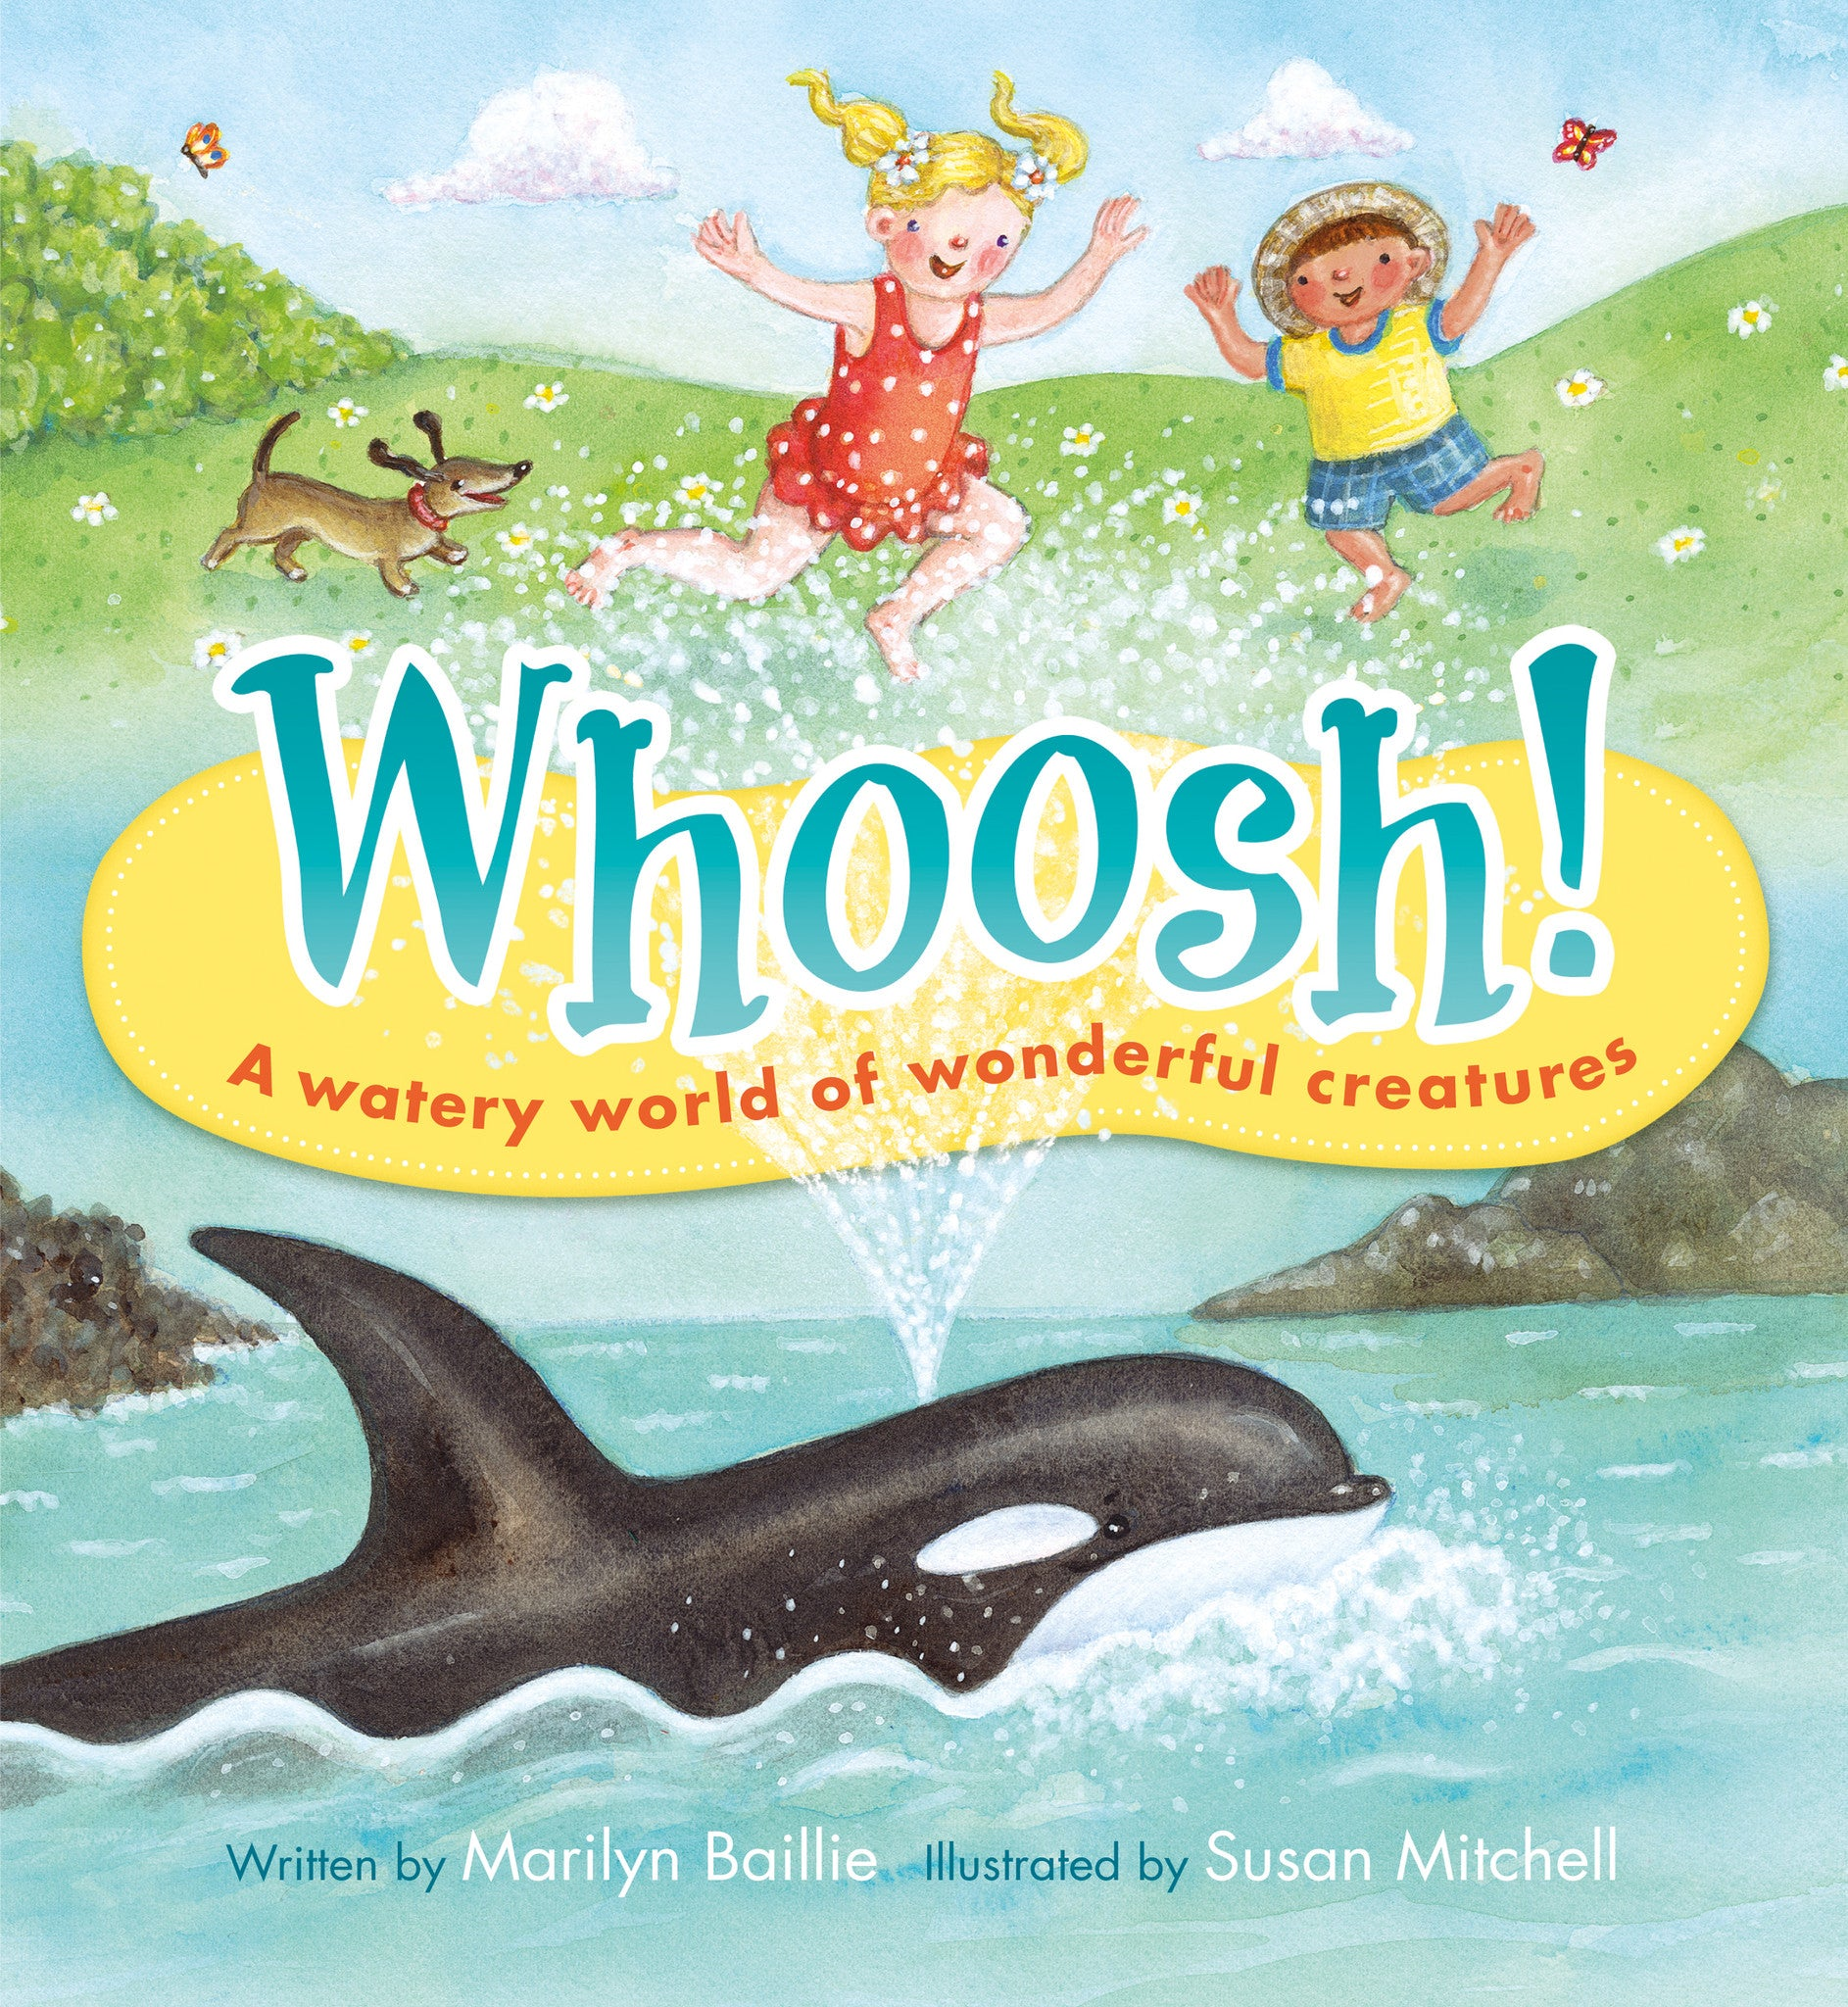 bc7e5c2709e Whoosh! - Owlkids - Reading for kids and literacy resources for parents  made fun.